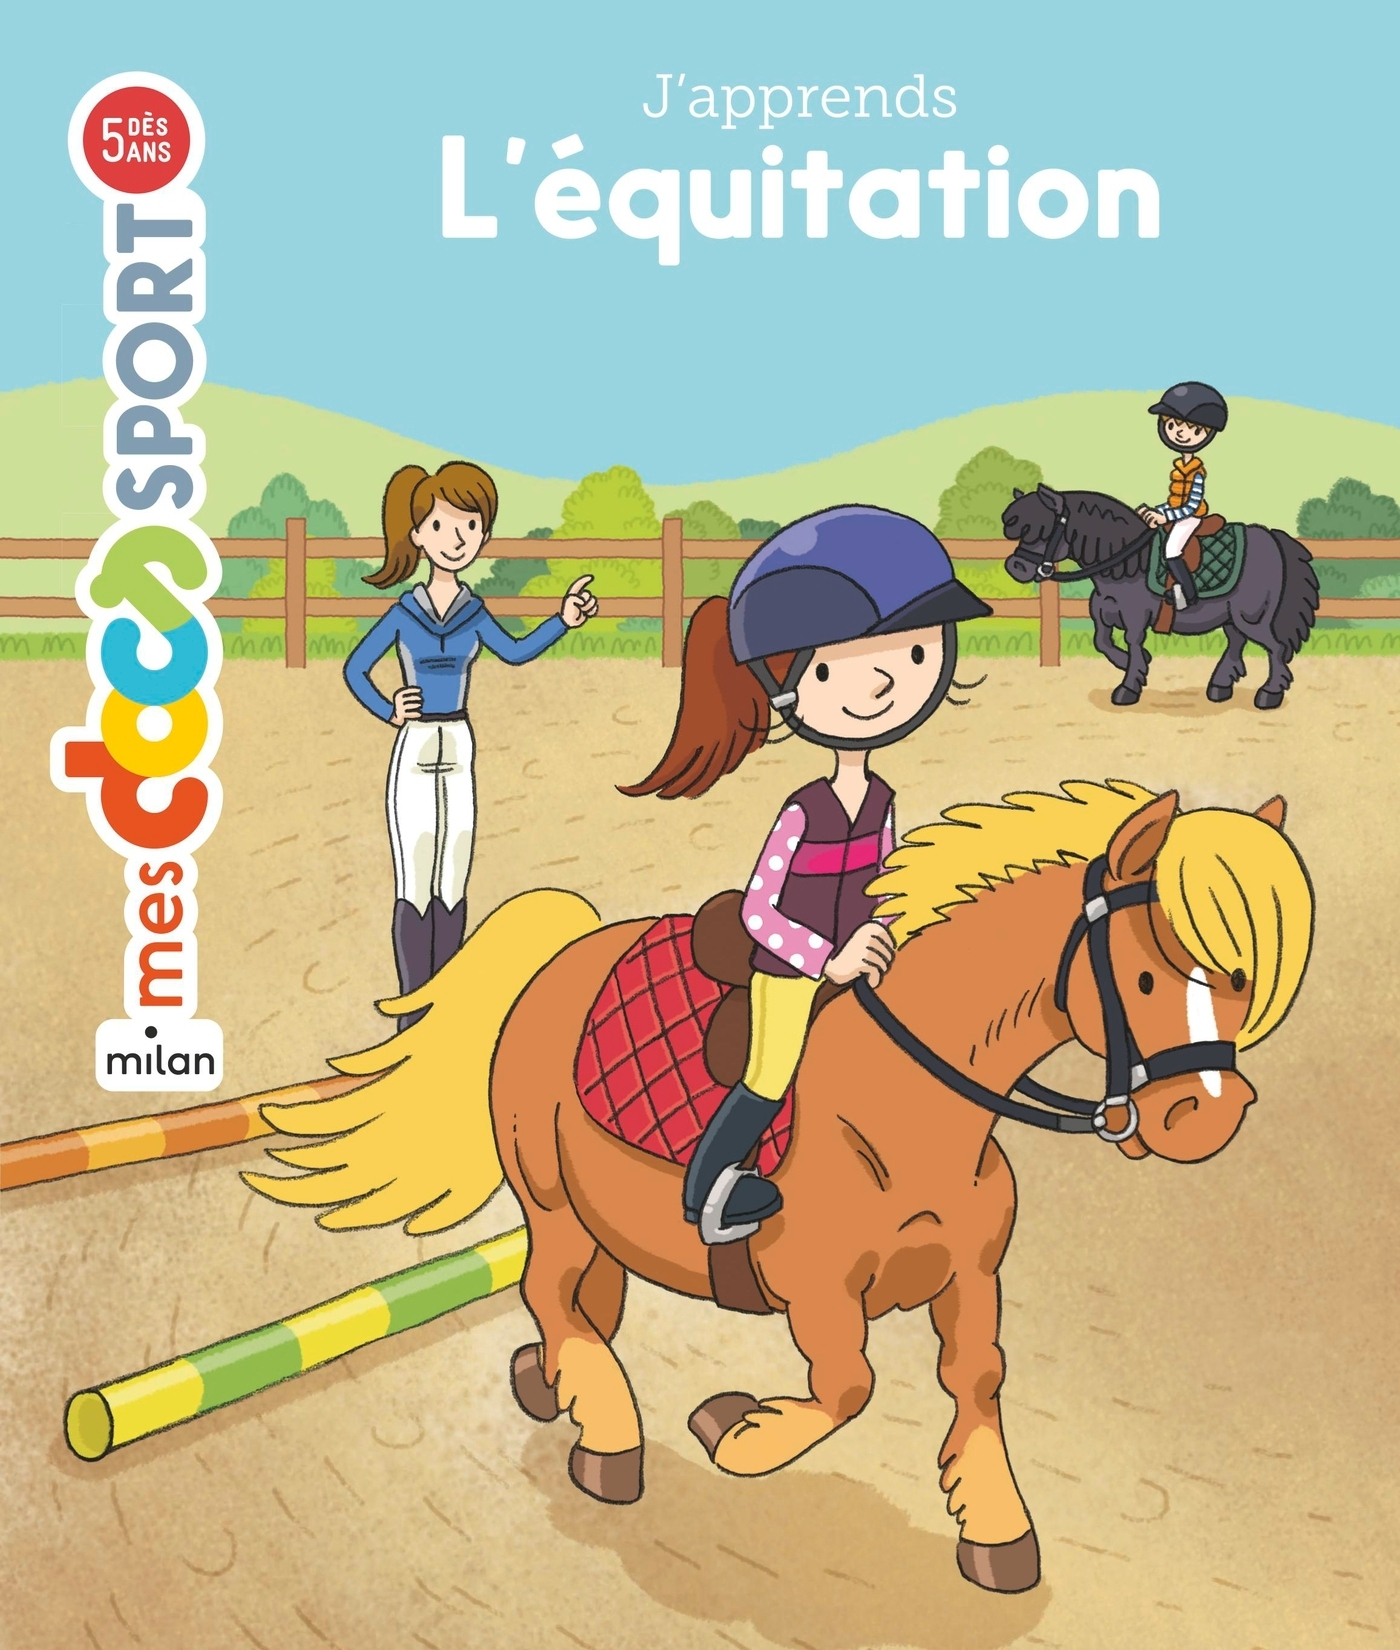 J'APPRENDS L'EQUITATION